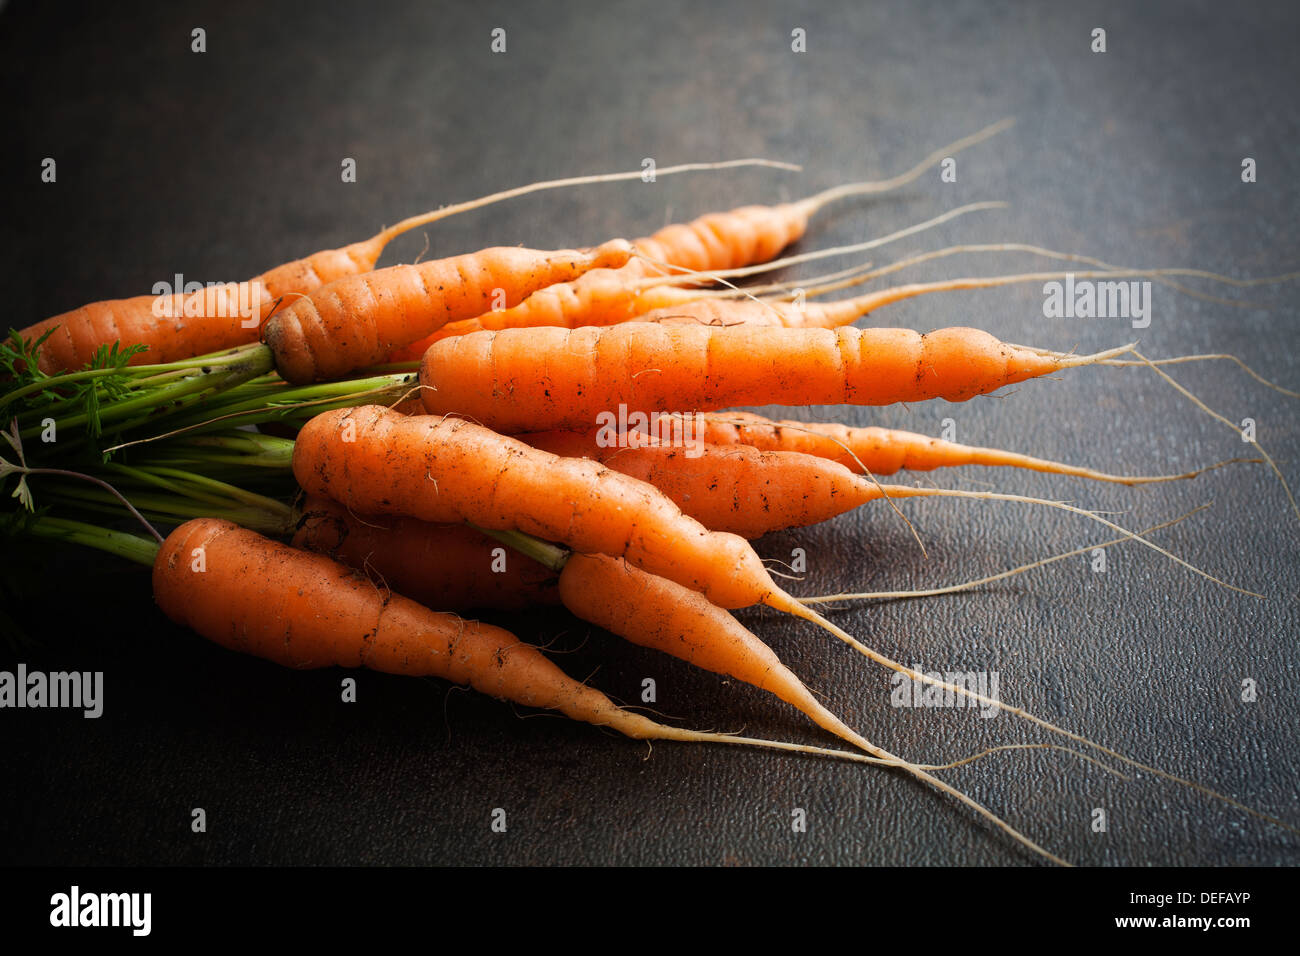 Bunch of fresh carrots on dark background Stock Photo